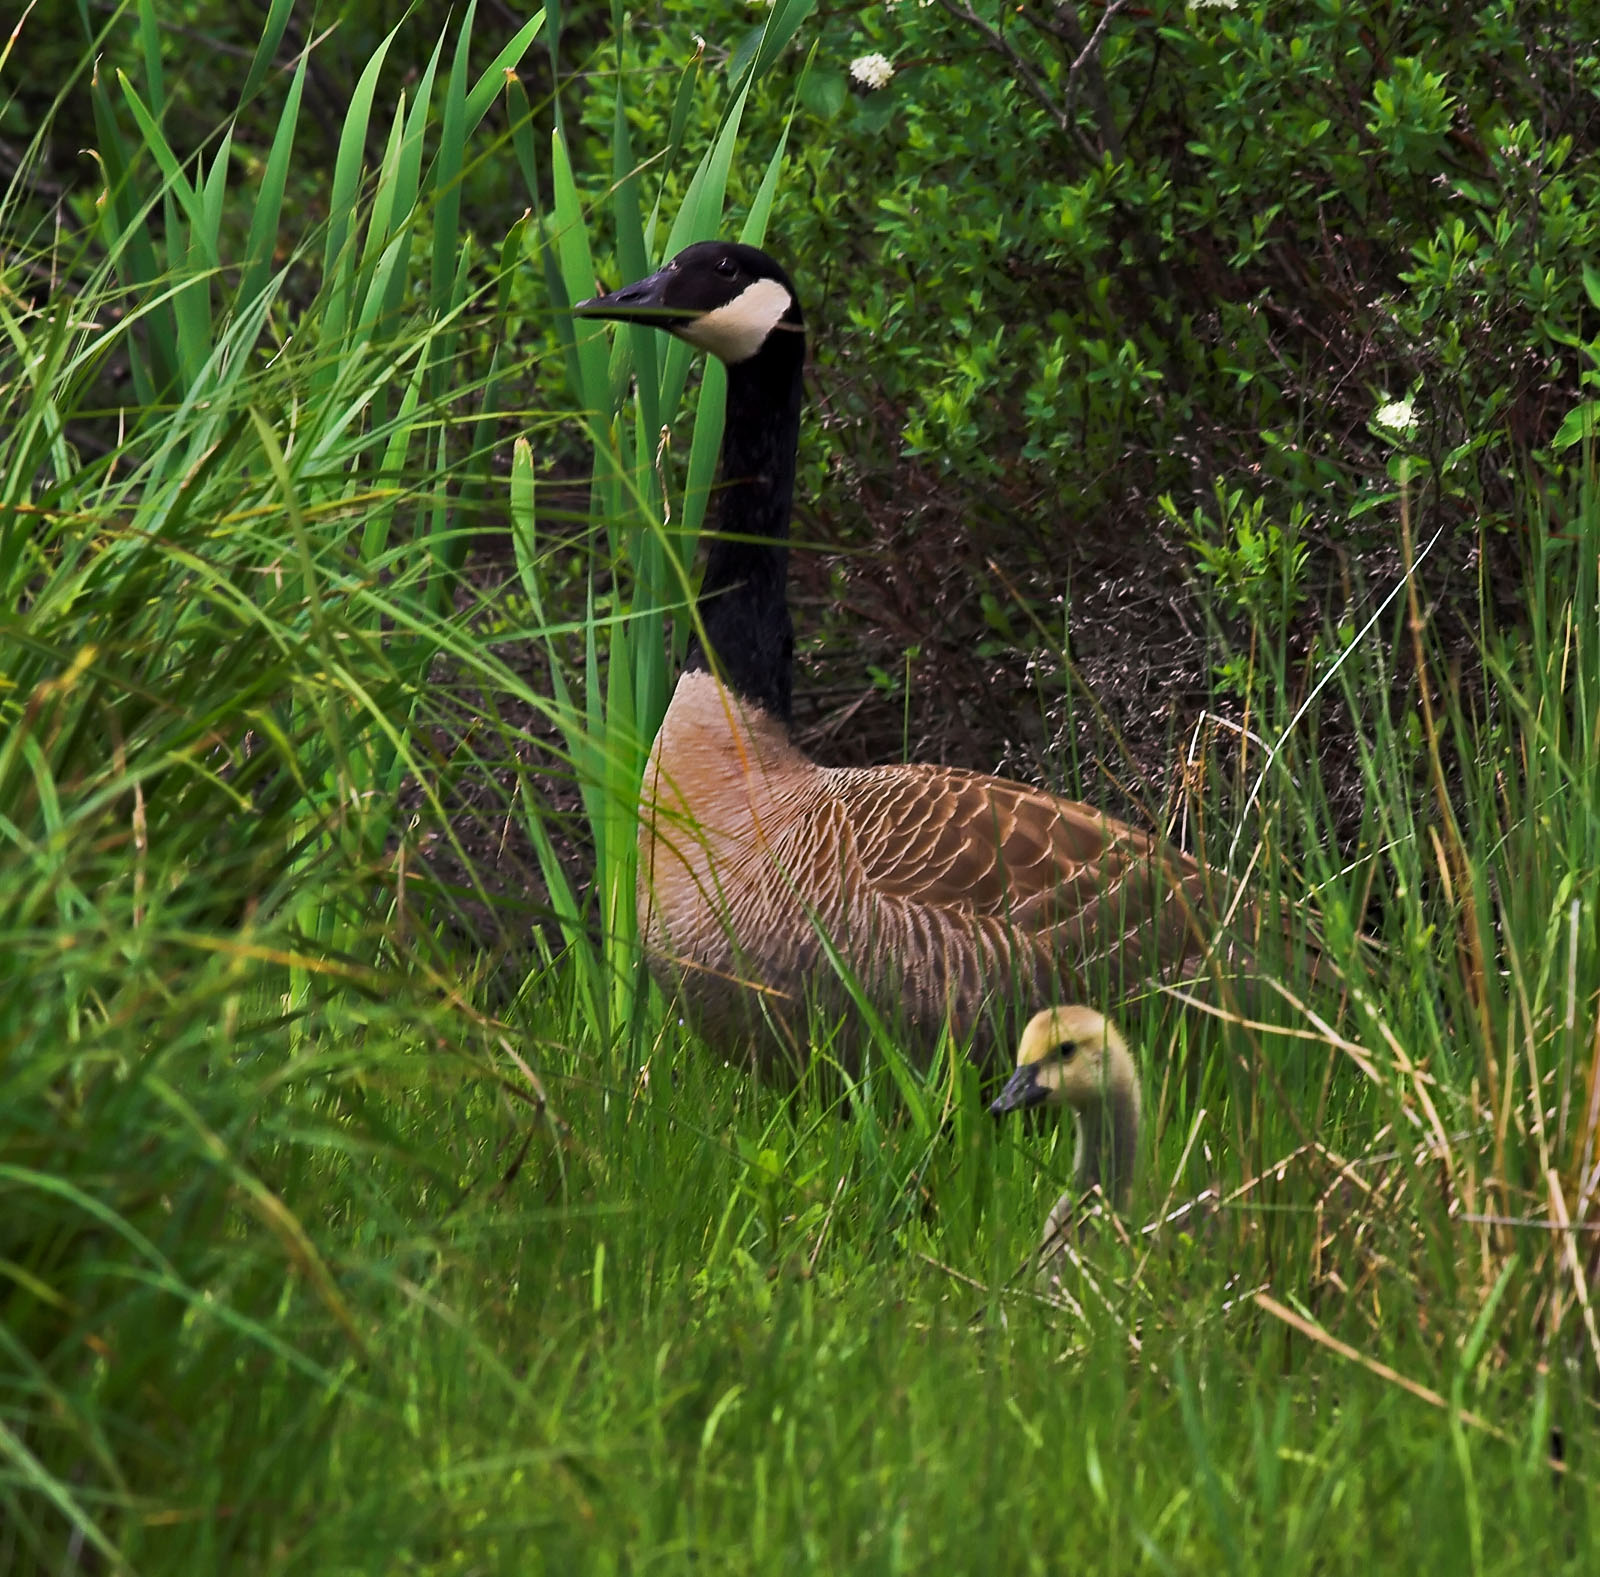 A Canada goose and gosling poke their heads out of the grass along a trout stream. From the Bois Brule River in Wisconsin.